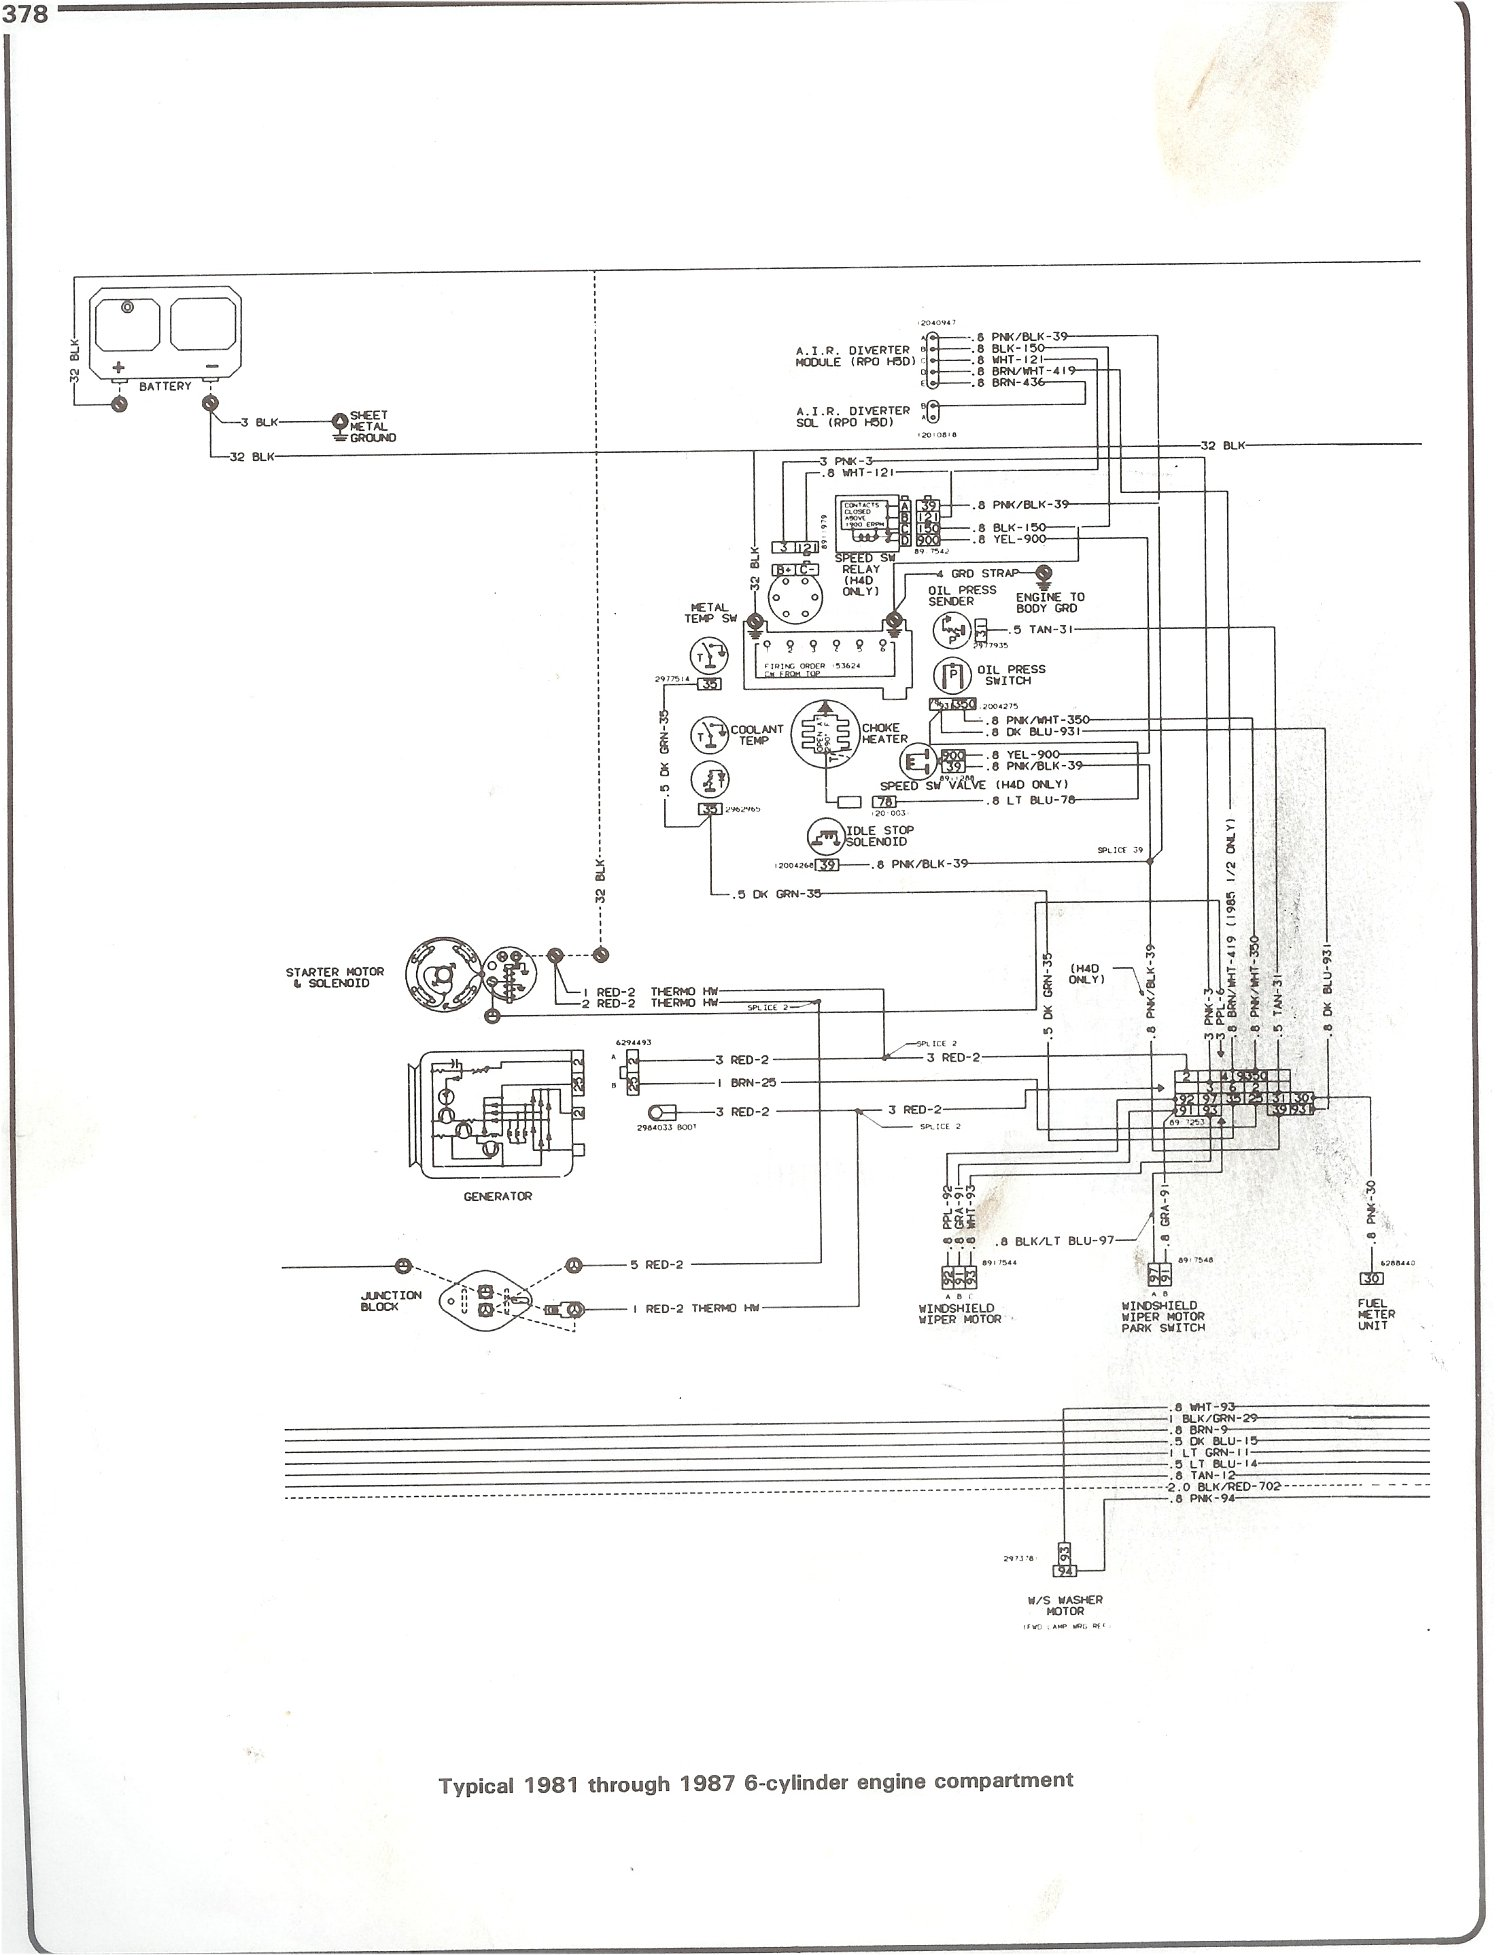 Superb 32 Chevy Truck Wiring Diagram Wiring Diagram Gol Wiring Cloud Cranvenetmohammedshrineorg